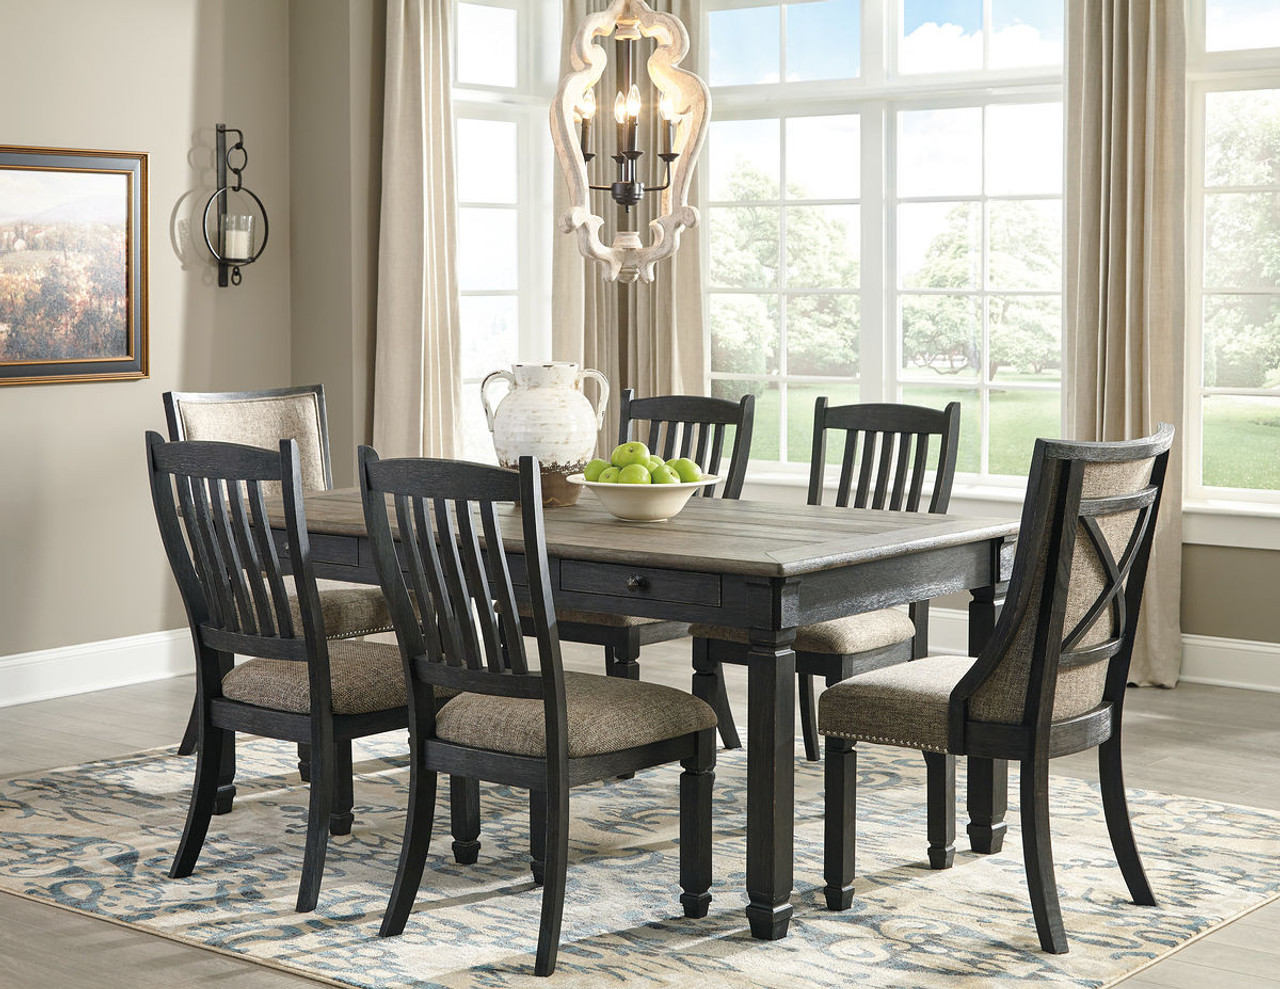 Dining Room Upholstered Chairs Ashley Tyler Creek Black Gray 7 Pc Rectangular Dining Room Table 4 Upholstered Side Chairs 2 Dining Room Upholstered Side Chairs